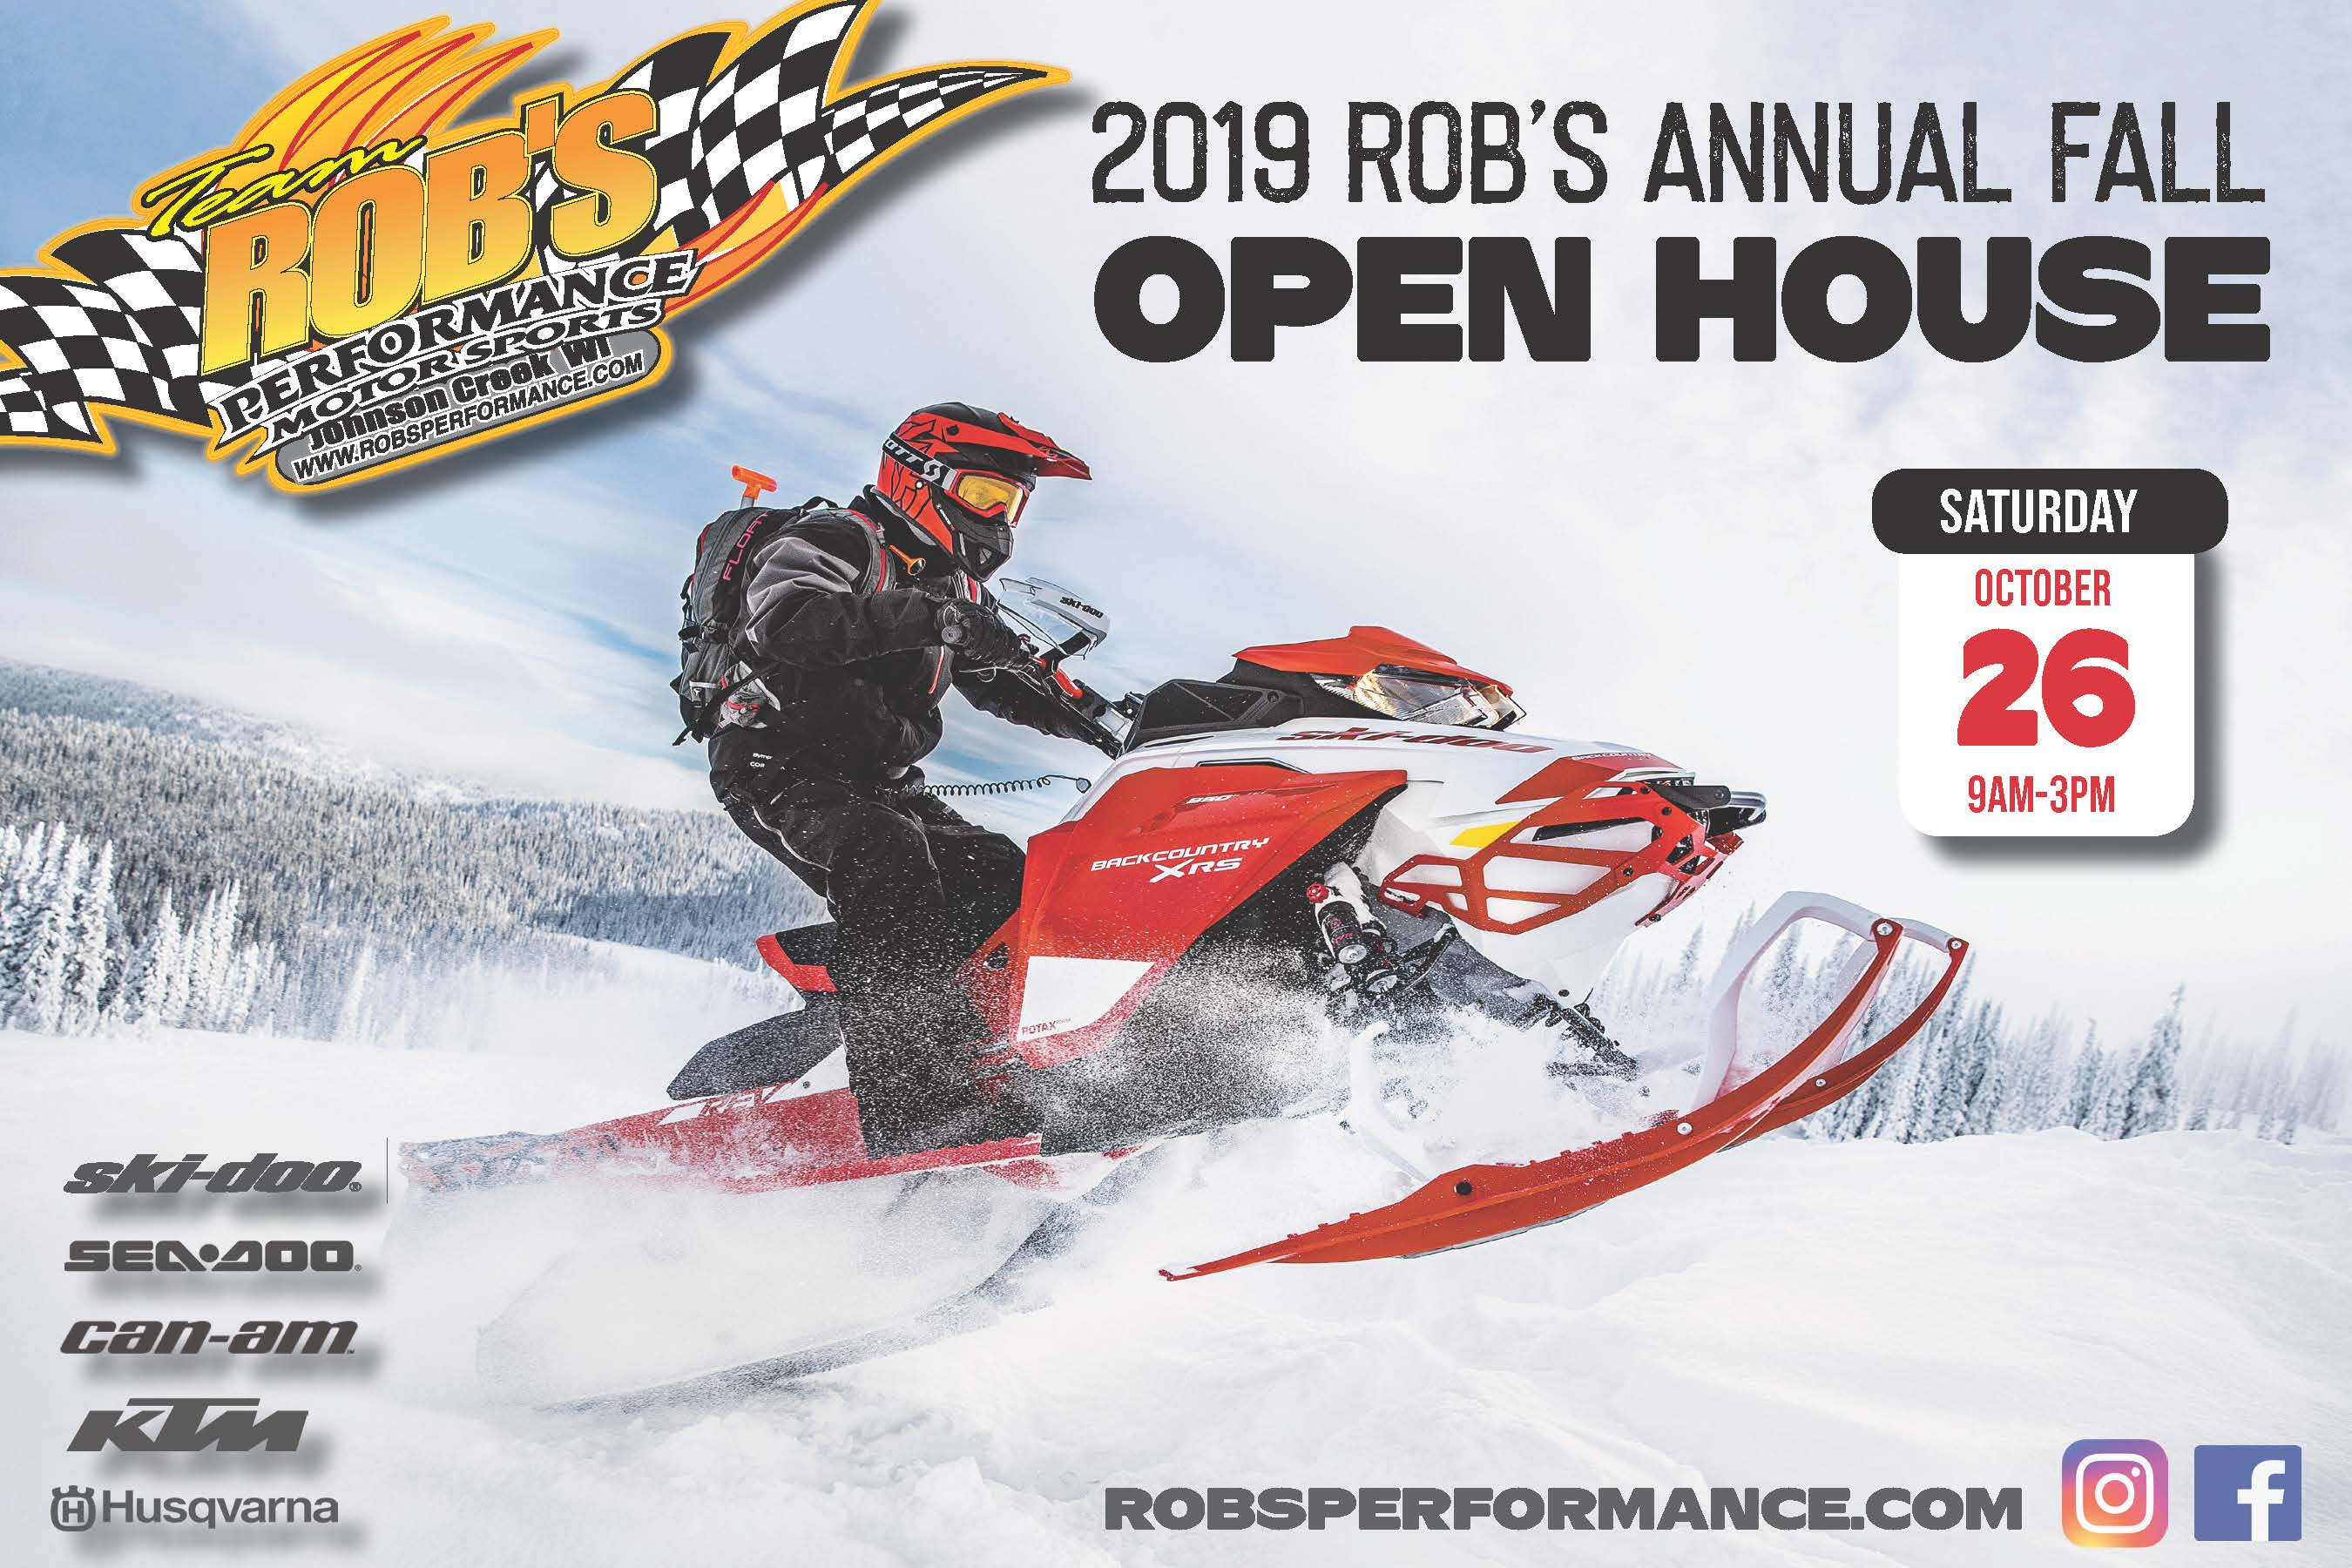 2019 Rob's Annual Fall Open House